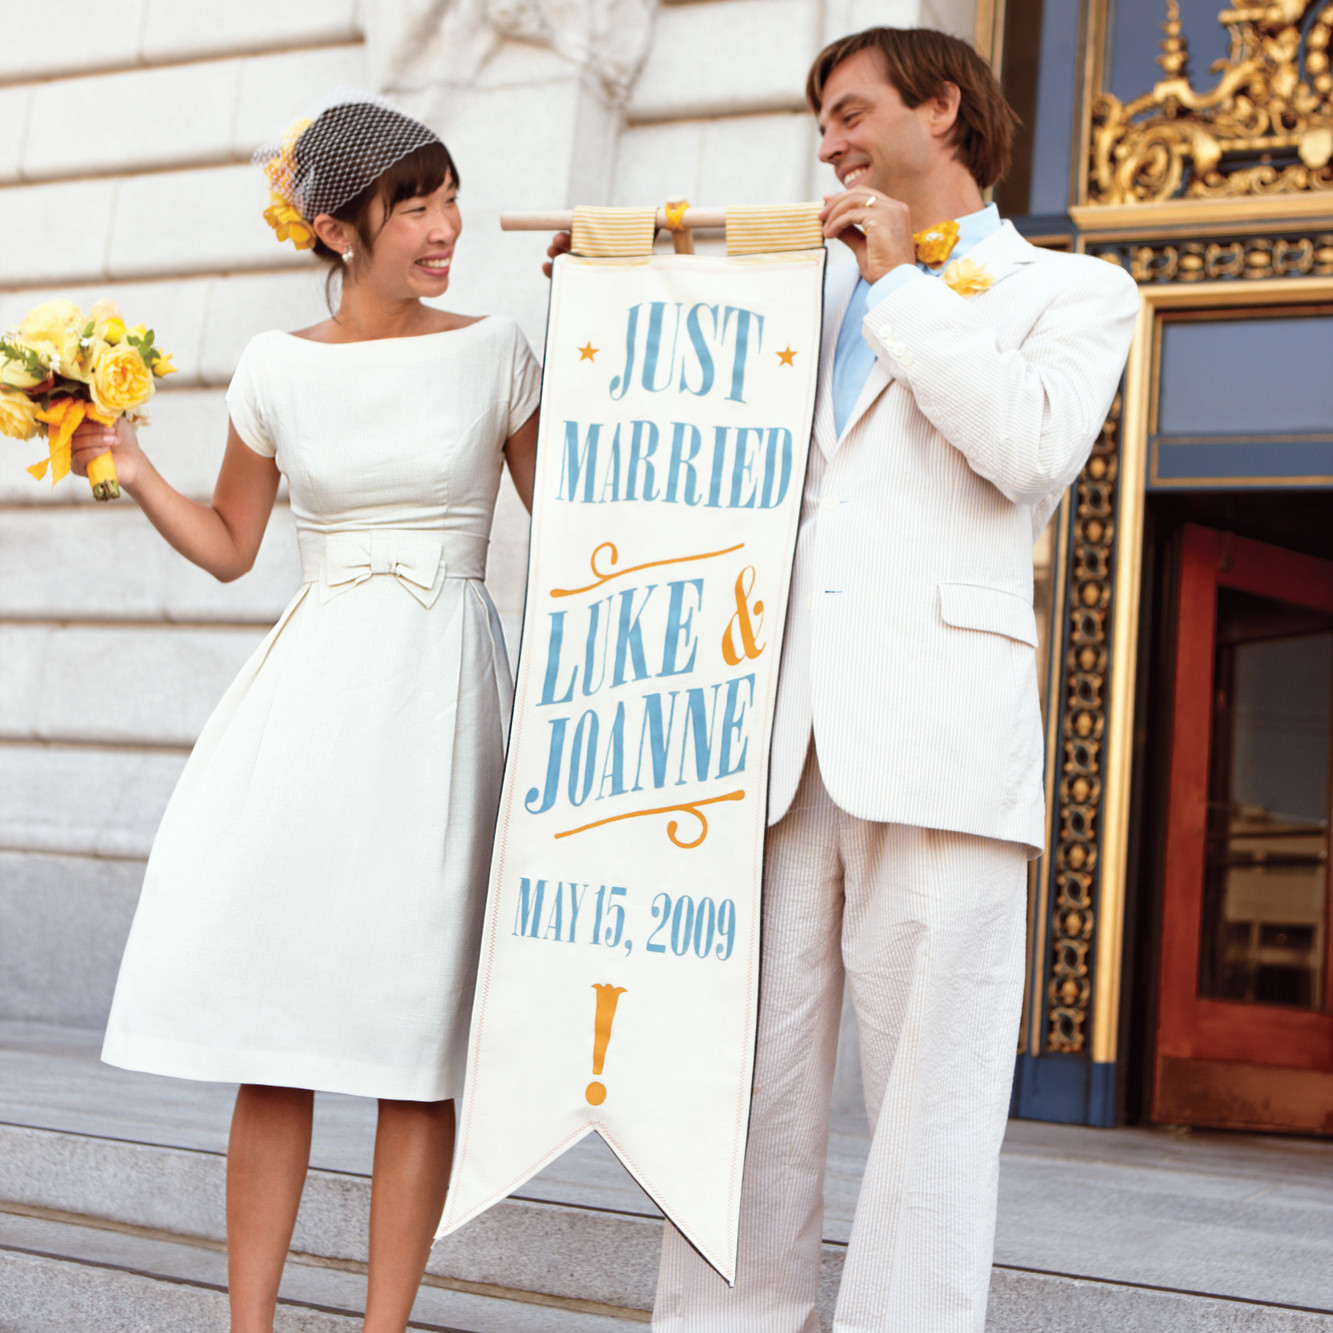 20 City Hall Wedding Dress Ideas for Making It Official in Style ...